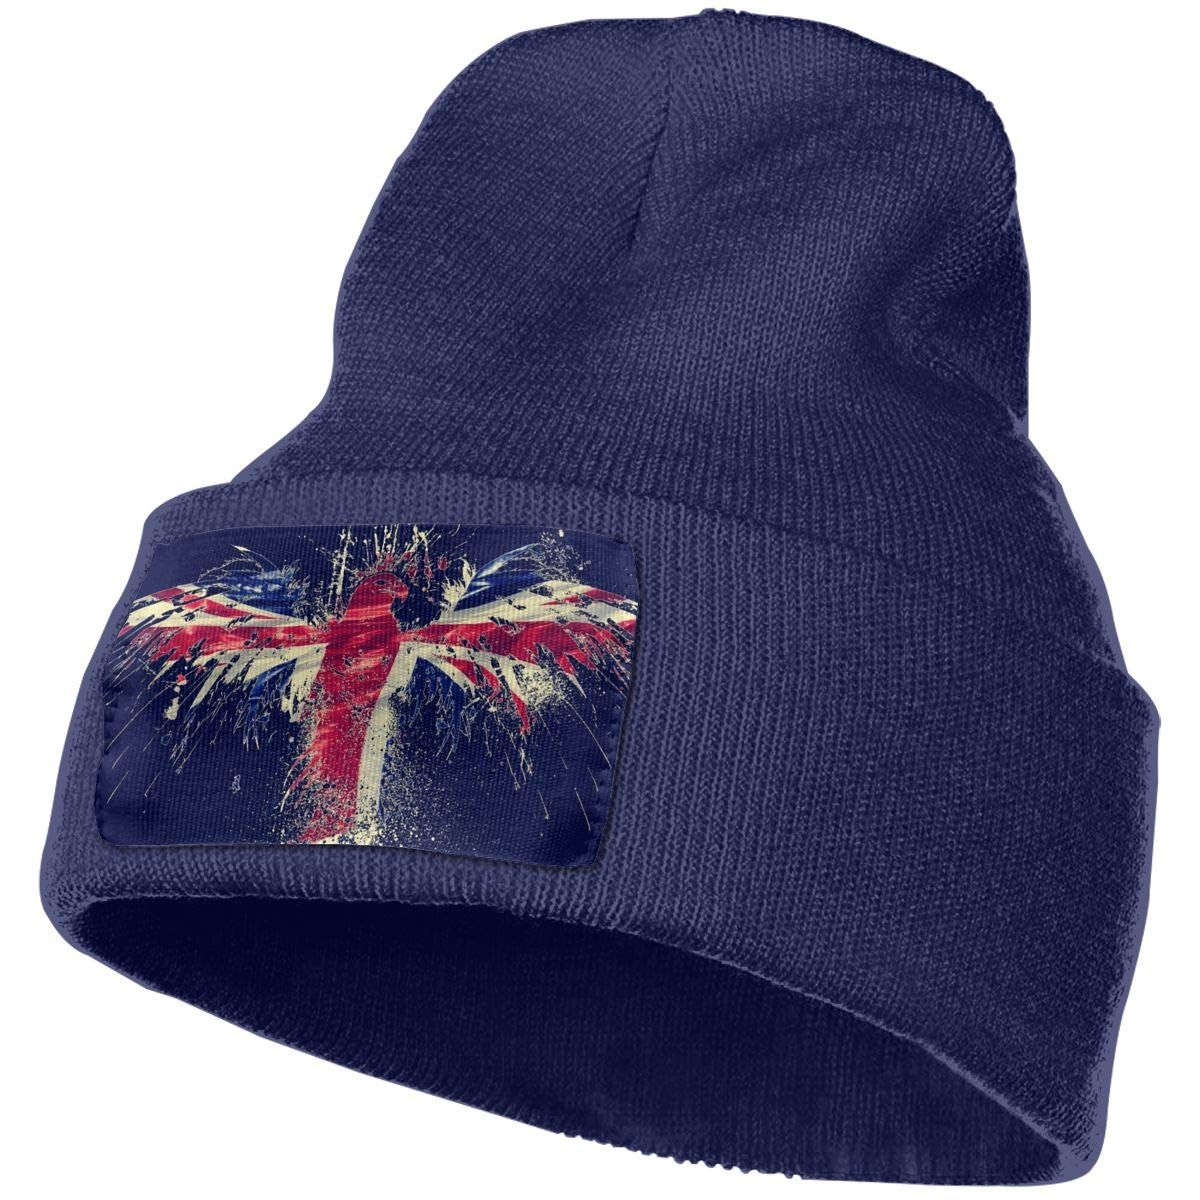 England Flag with USA Eagle Vintagedesign Hat for Men and Women Winter Warm Hats Knit Slouchy Thick Skull Cap Black